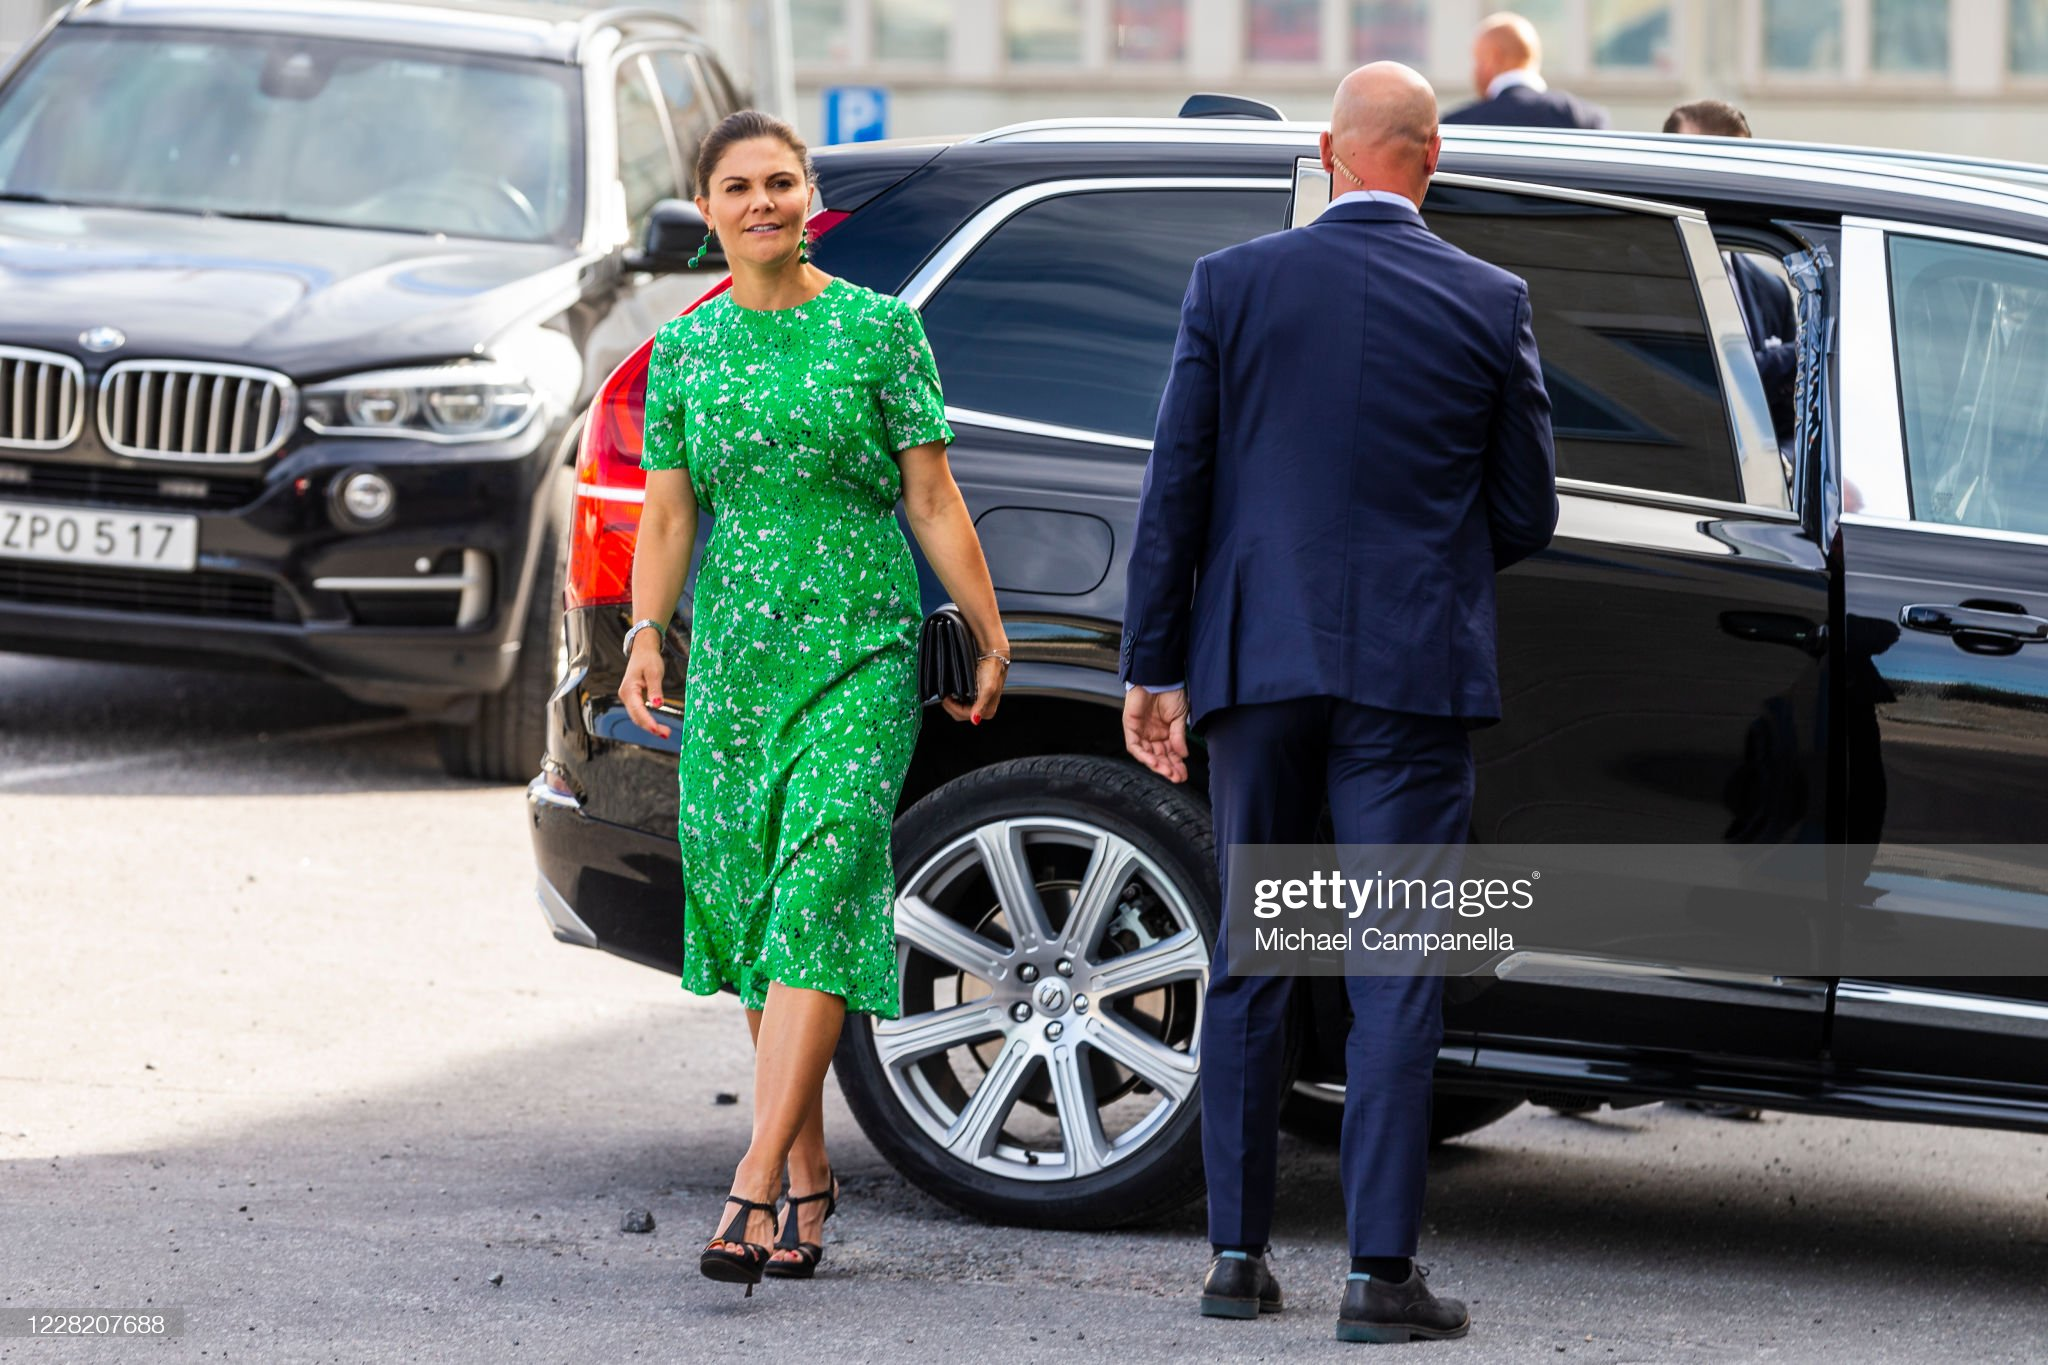 crown-princess-victoria-of-sweden-visits-the-artist-organization-on-picture-id1228207688